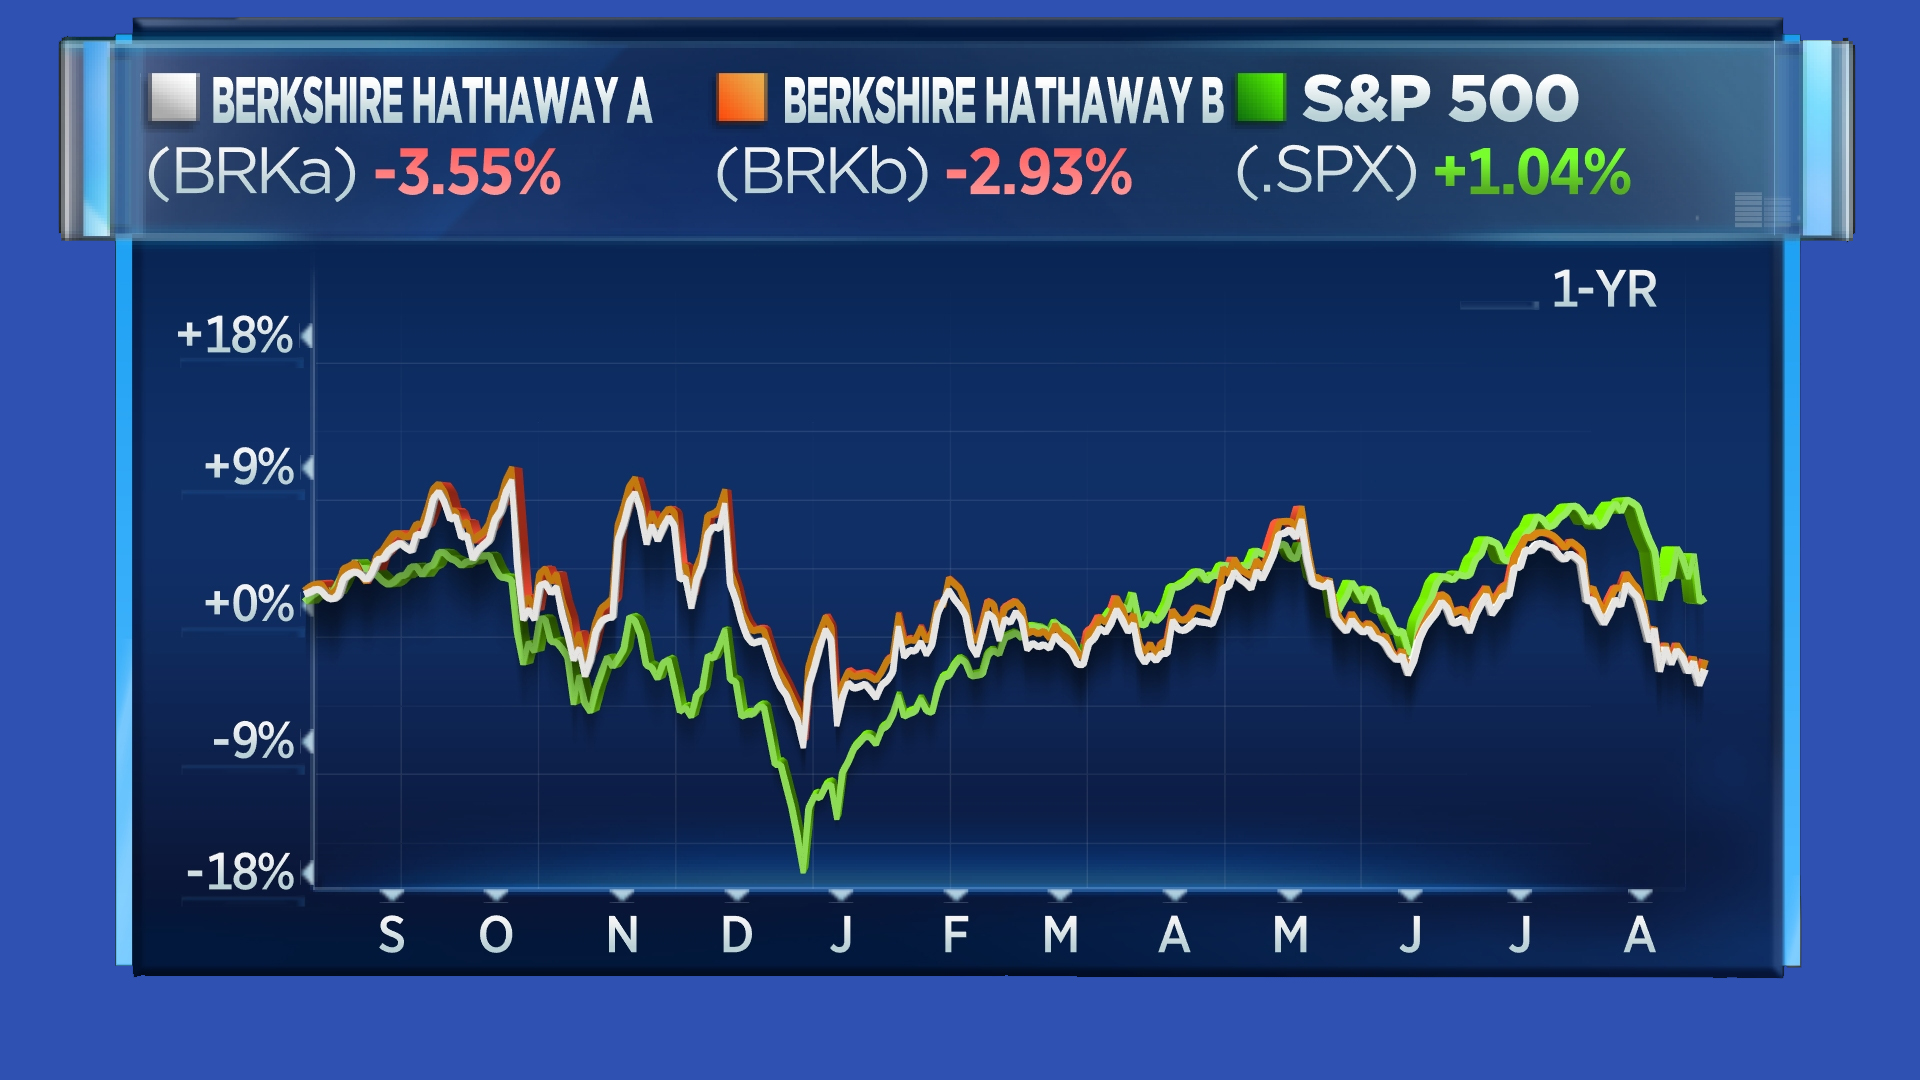 BRKA vs BRKB vs S&P (One year)